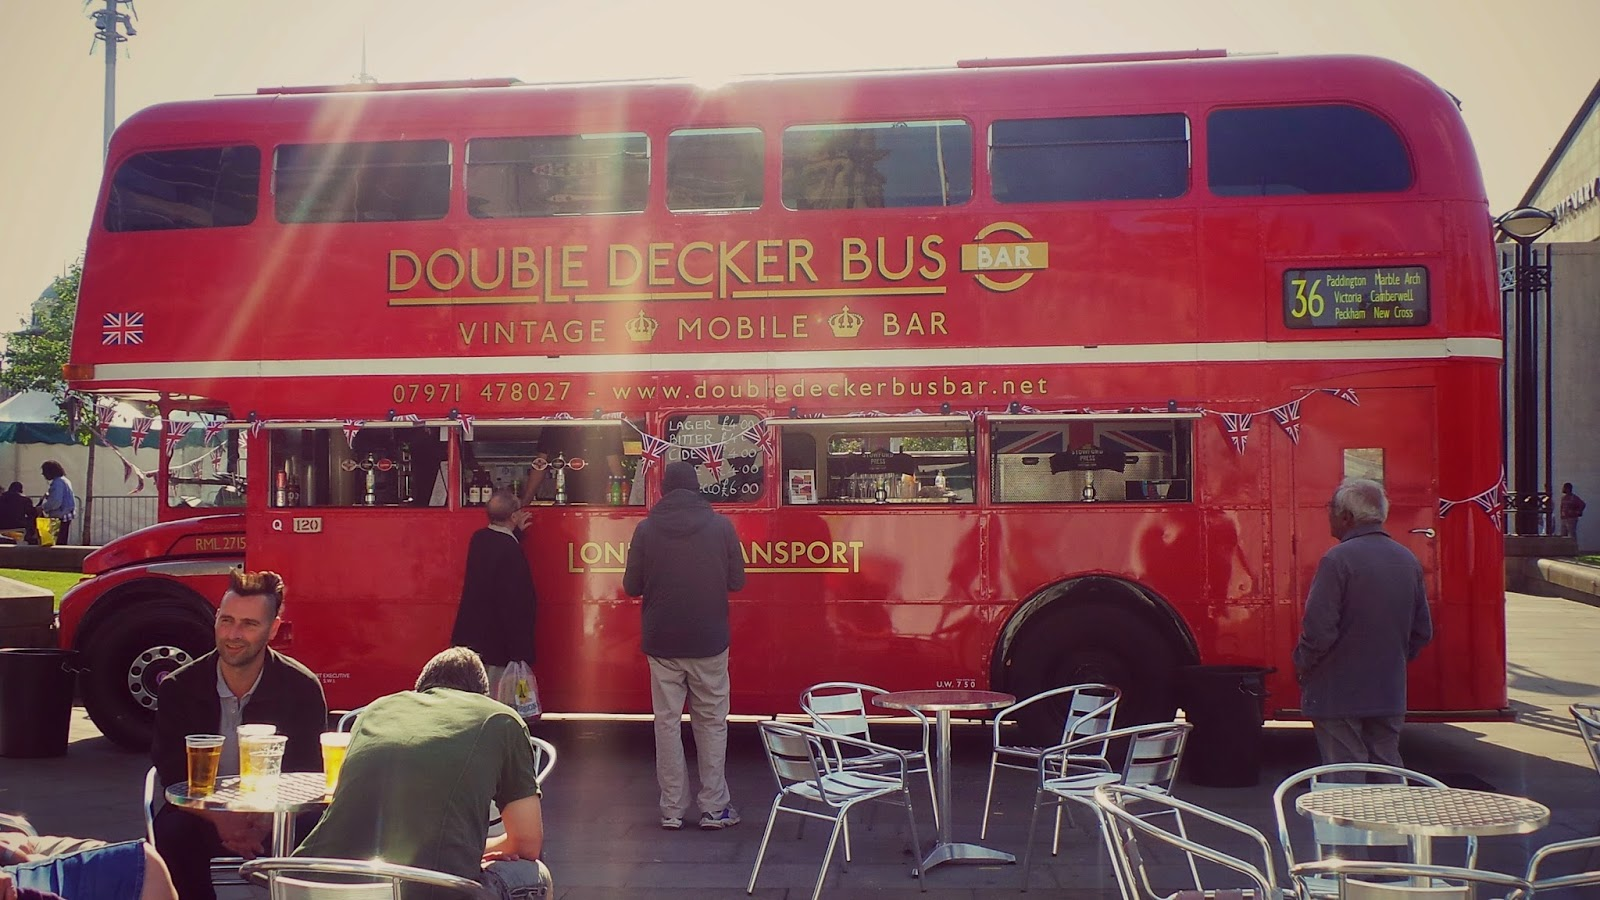 bradford curry festival double decker bus bar